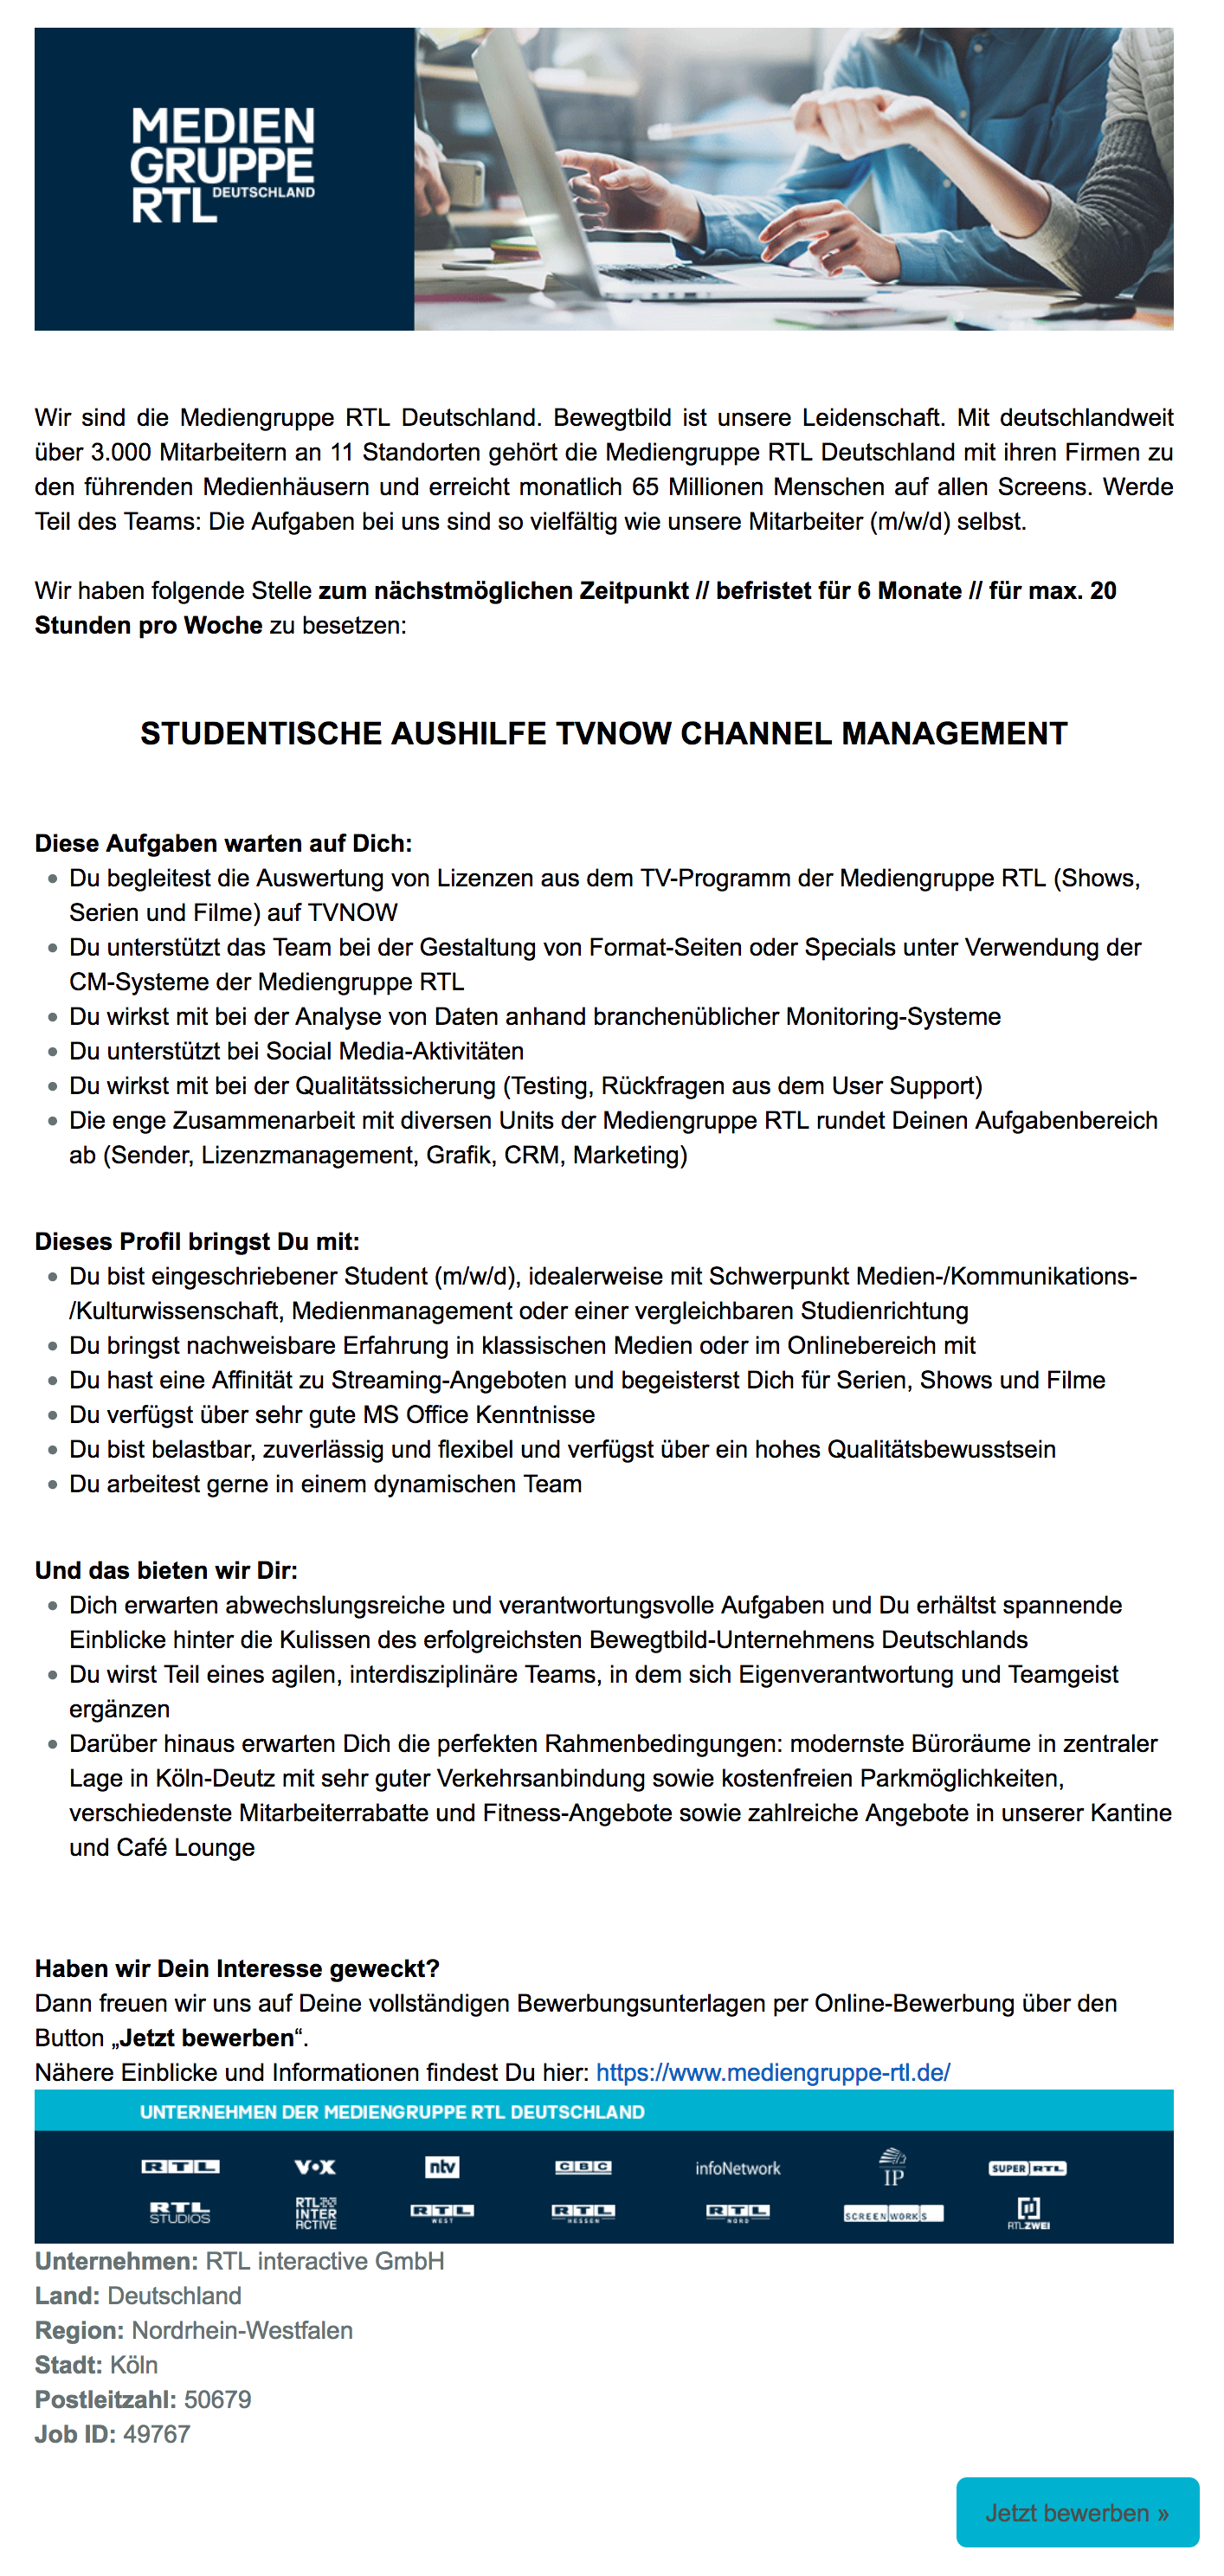 Studentische Aushilfe (m/w/d) TVNOW Channel Management (RTL interactive)